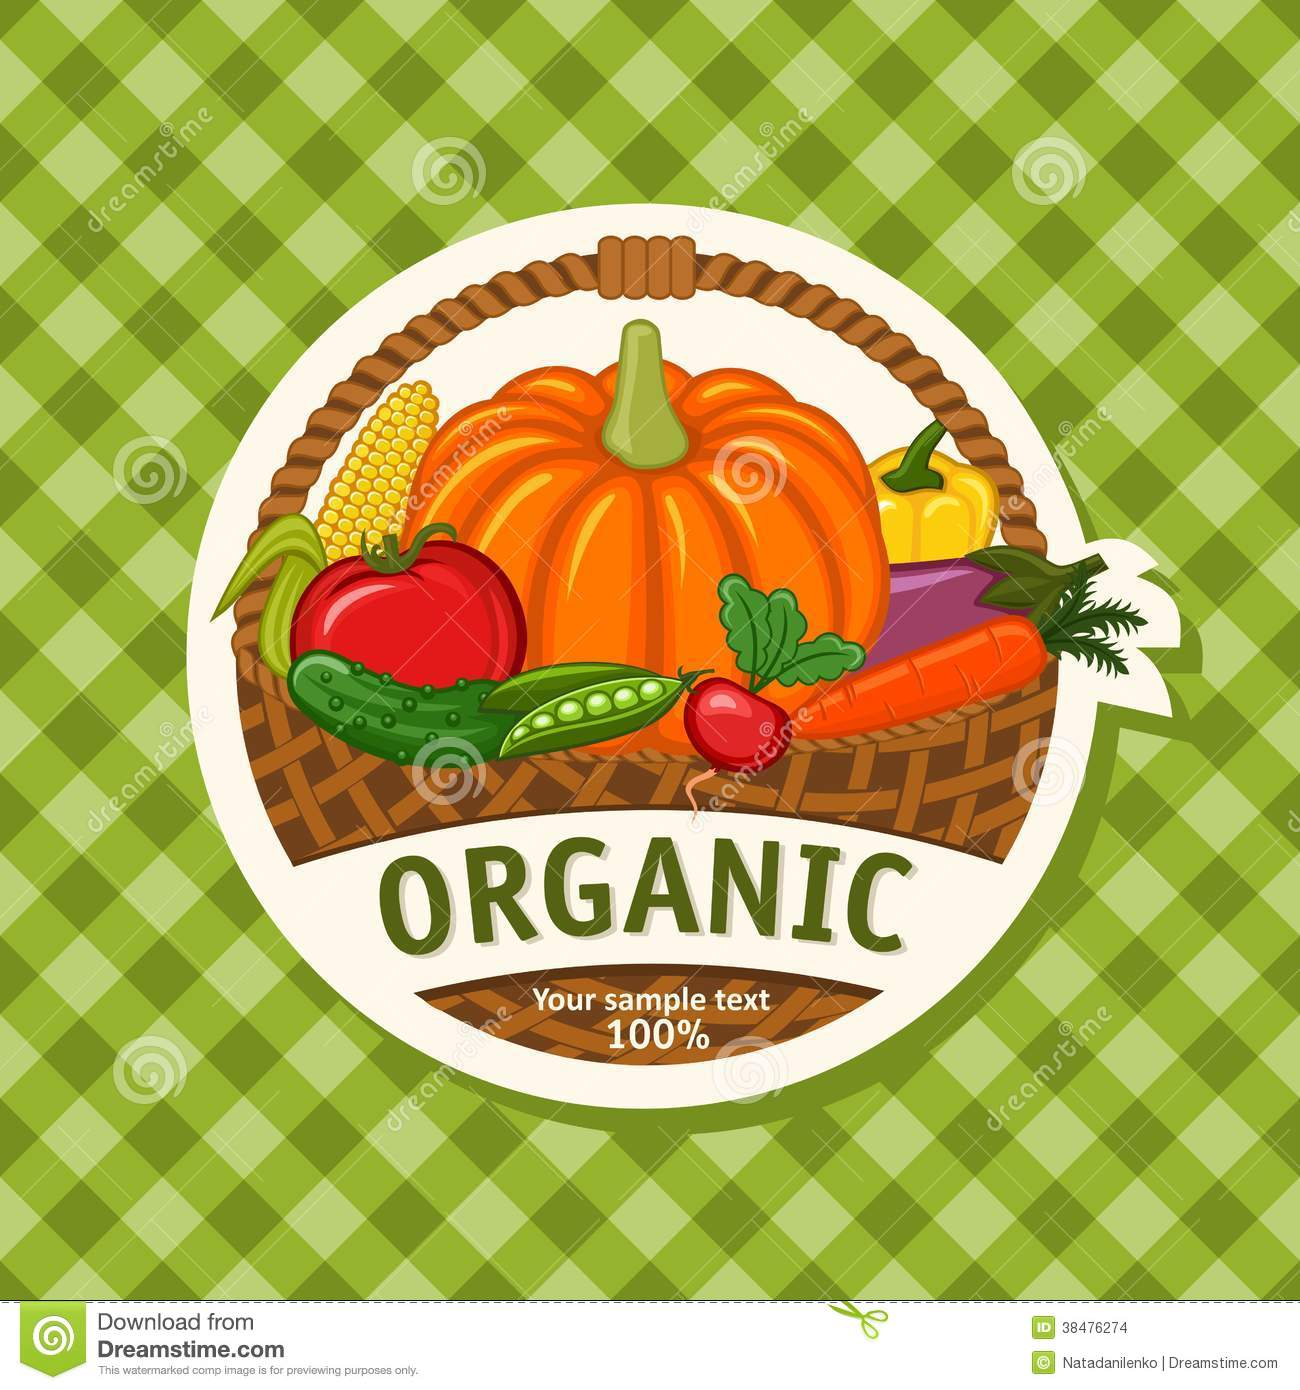 Vegetable Illustration Stock Images, Royalty-Free Images ...